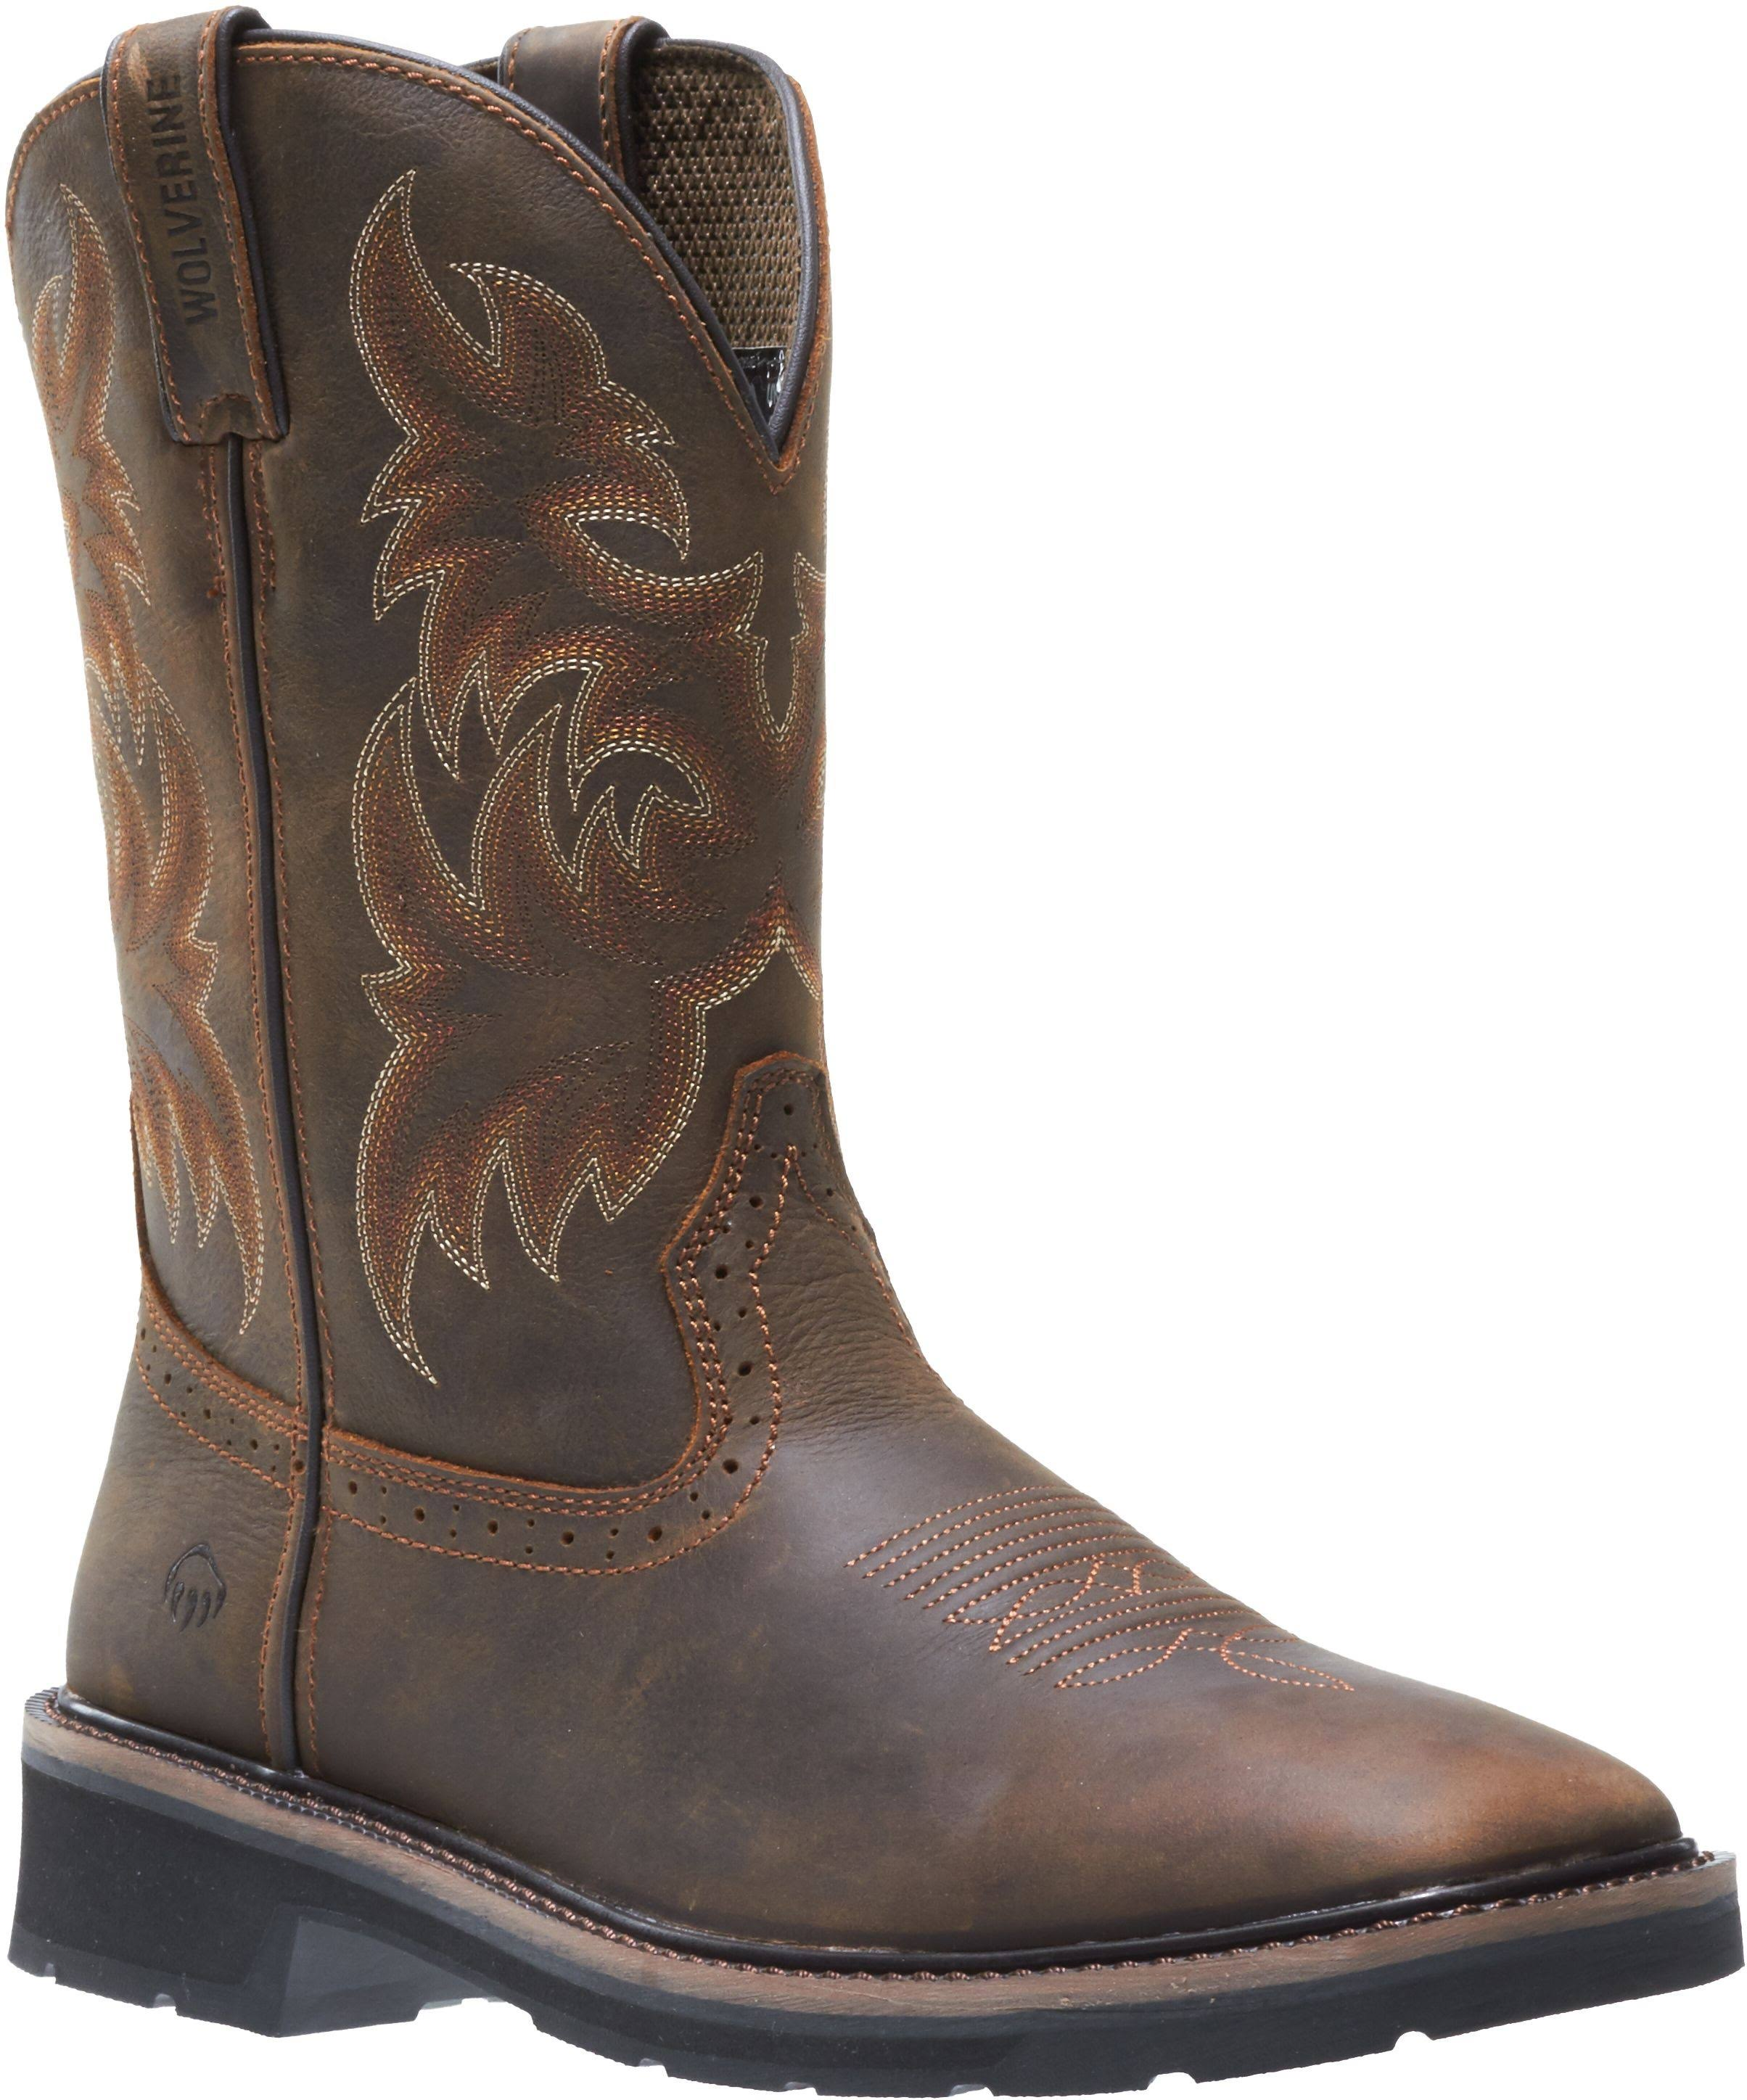 Wolverine Mens Rancher Wellington Steel Toe Work Boot - Brown, Medium, 11 US